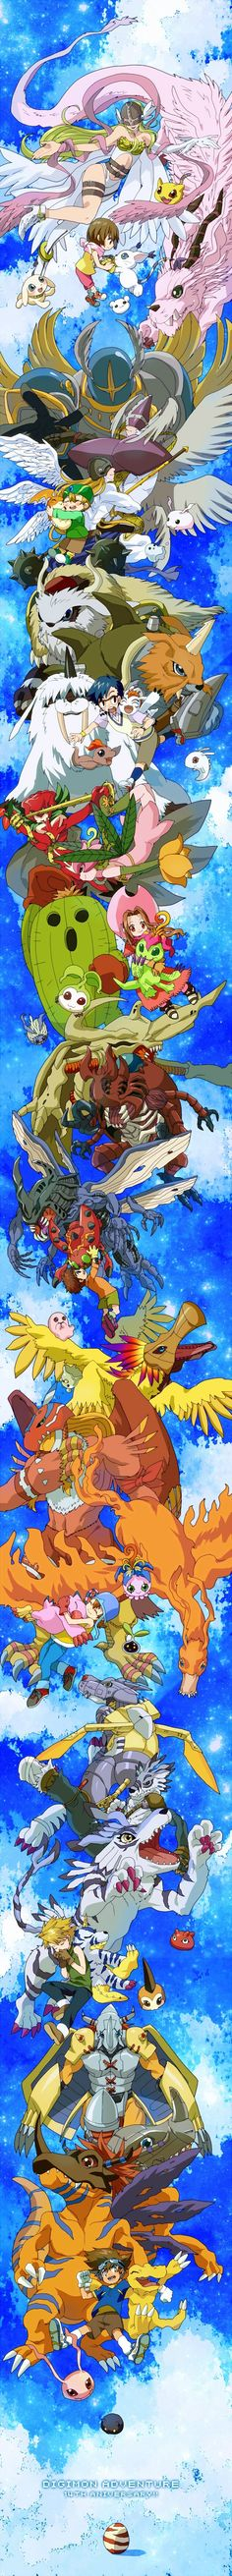 One of my favorite childhood shows.... Digimon